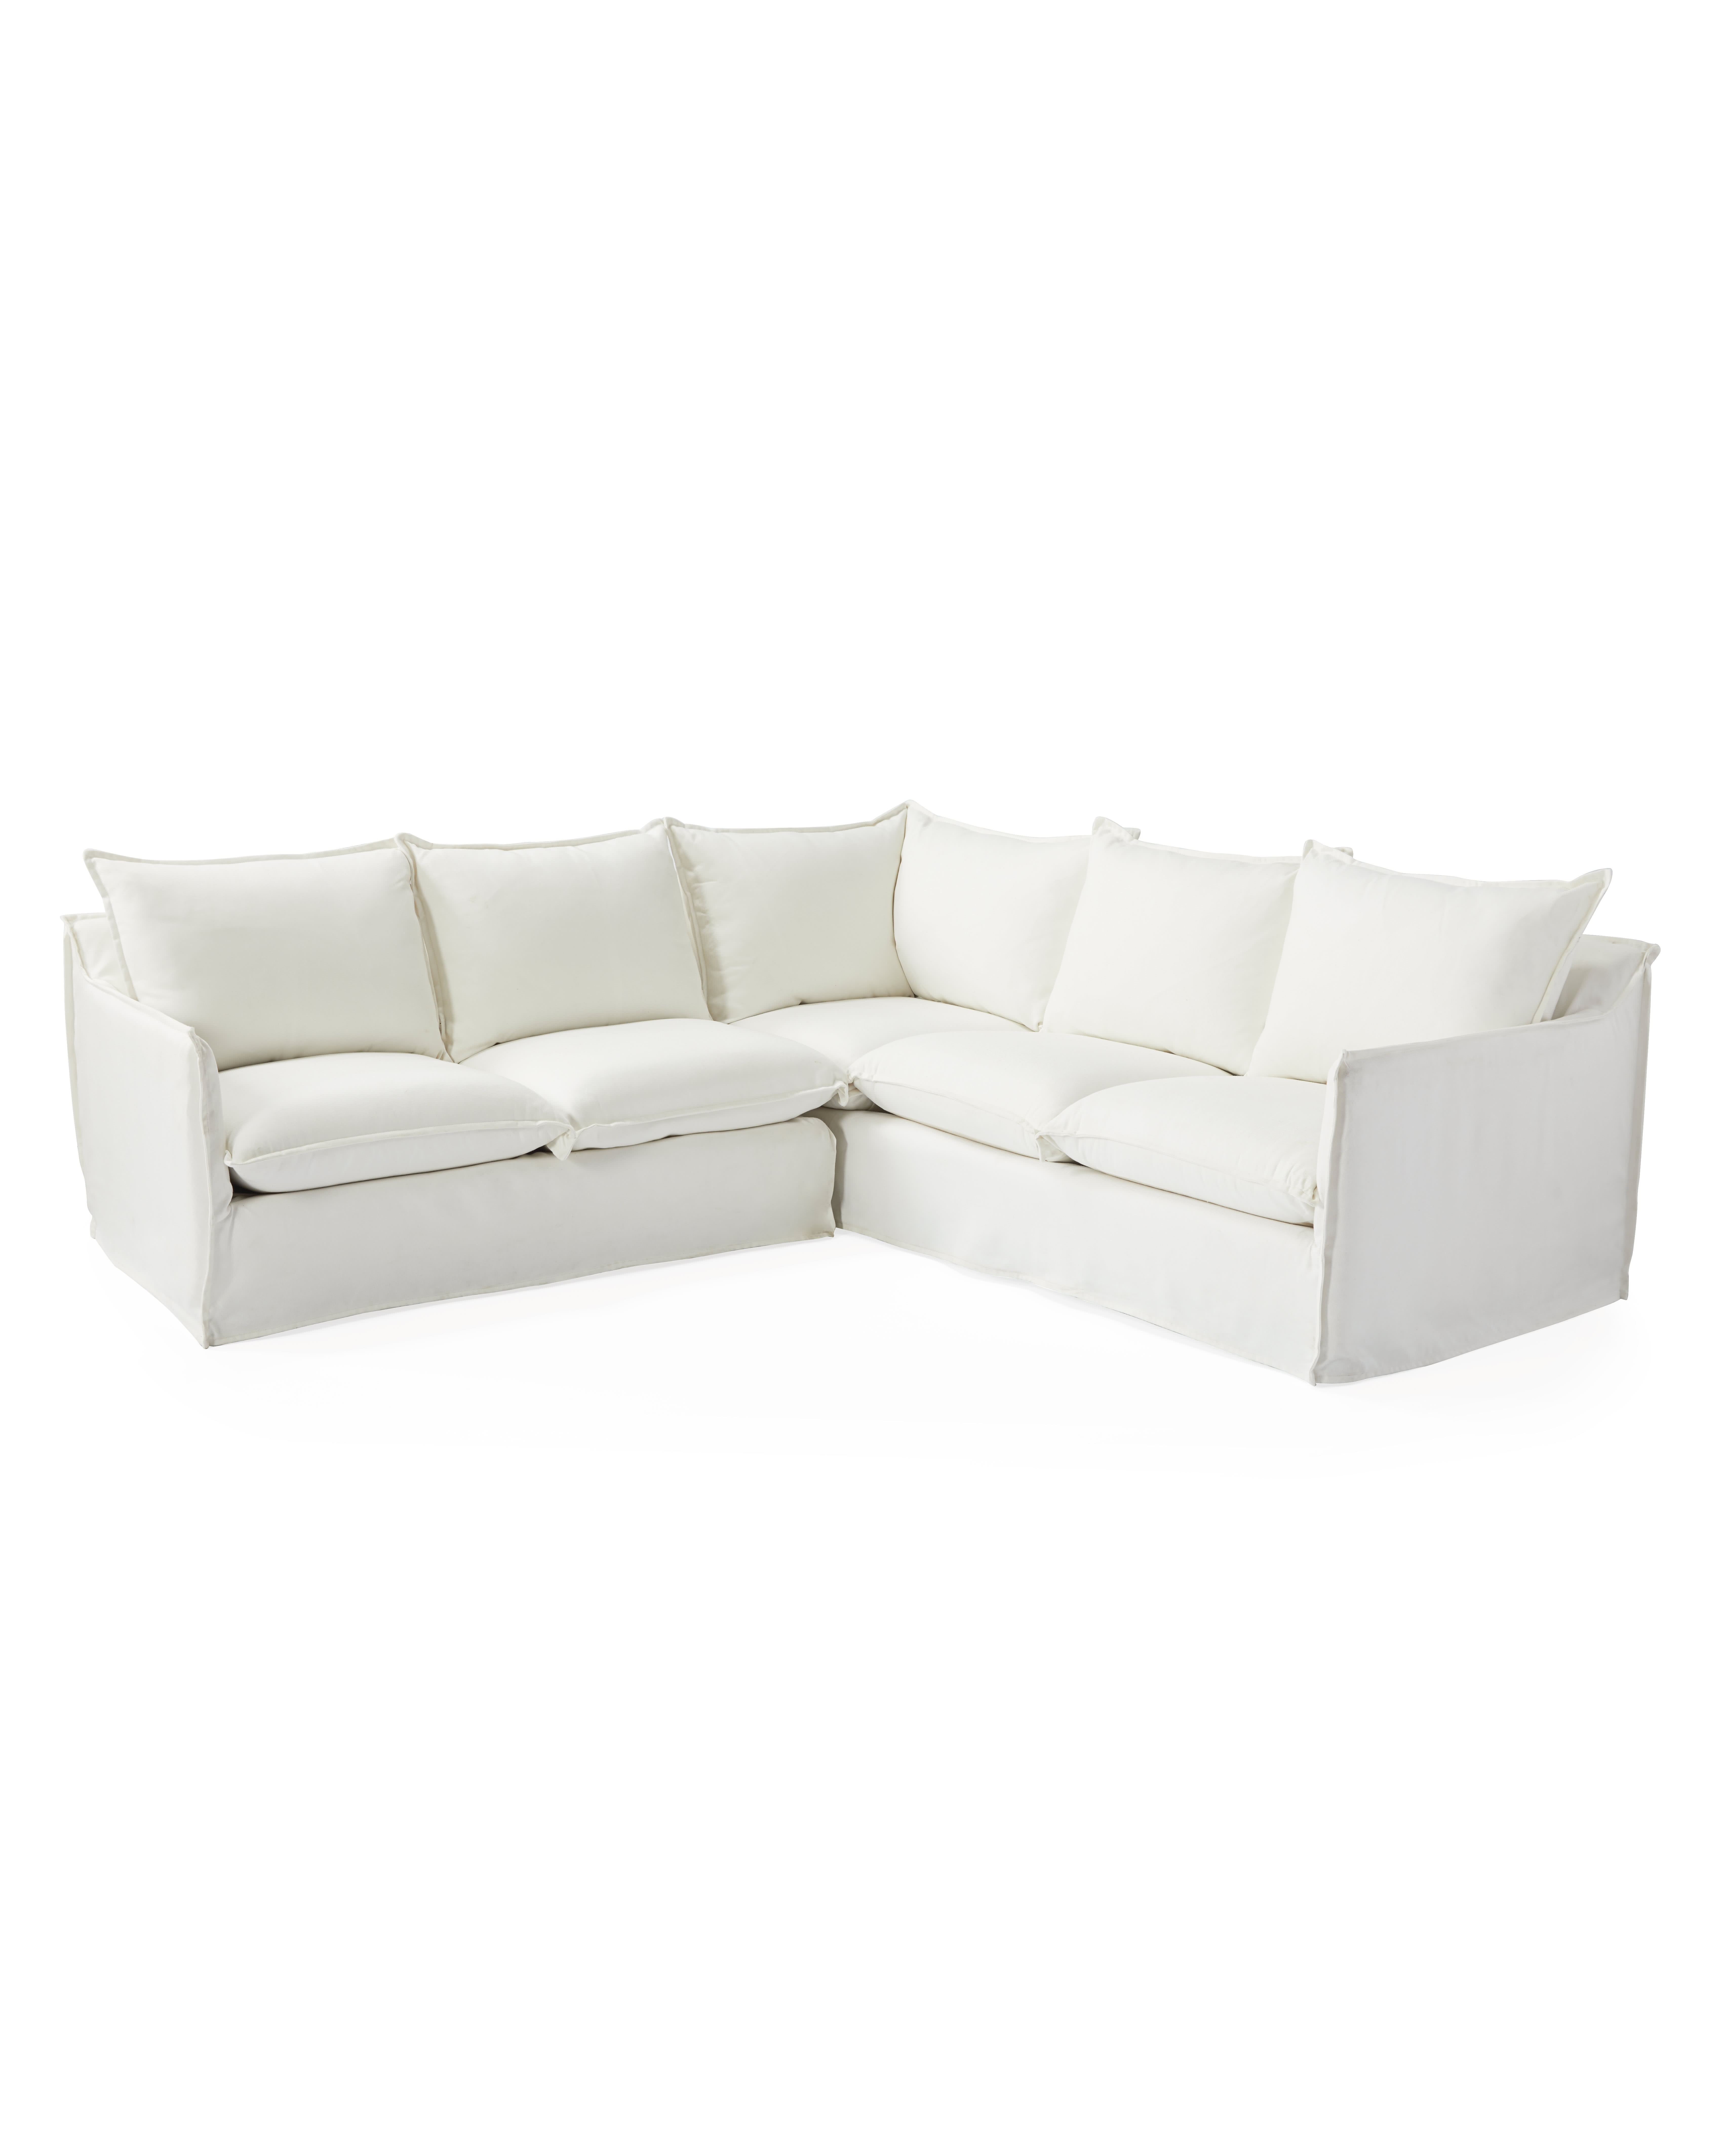 Sundial Outdoor Right-Facing Sectional,